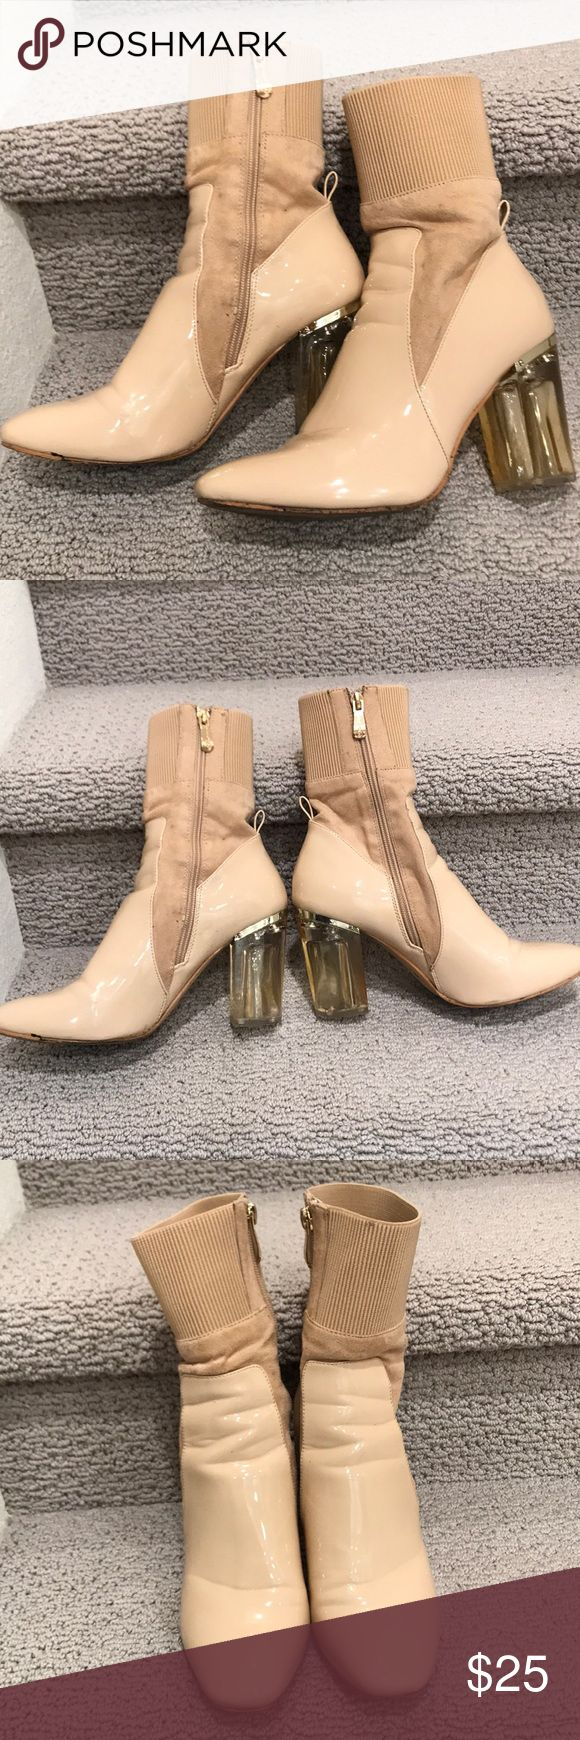 Cape Robbin Clear Perspex Heel Ankle Bootie Shoes Beige/nude Cape Robbin Block Clear Lucite Perspex Heel Ankle Boot Bootie Shoe in size 8.5. Worn a few times. The shoe overall is in really good condition. The bottom is a little dirty, but the dirt can be removed with water or shoe cleaner. cape robbin Shoes Ankle Boots & Booties